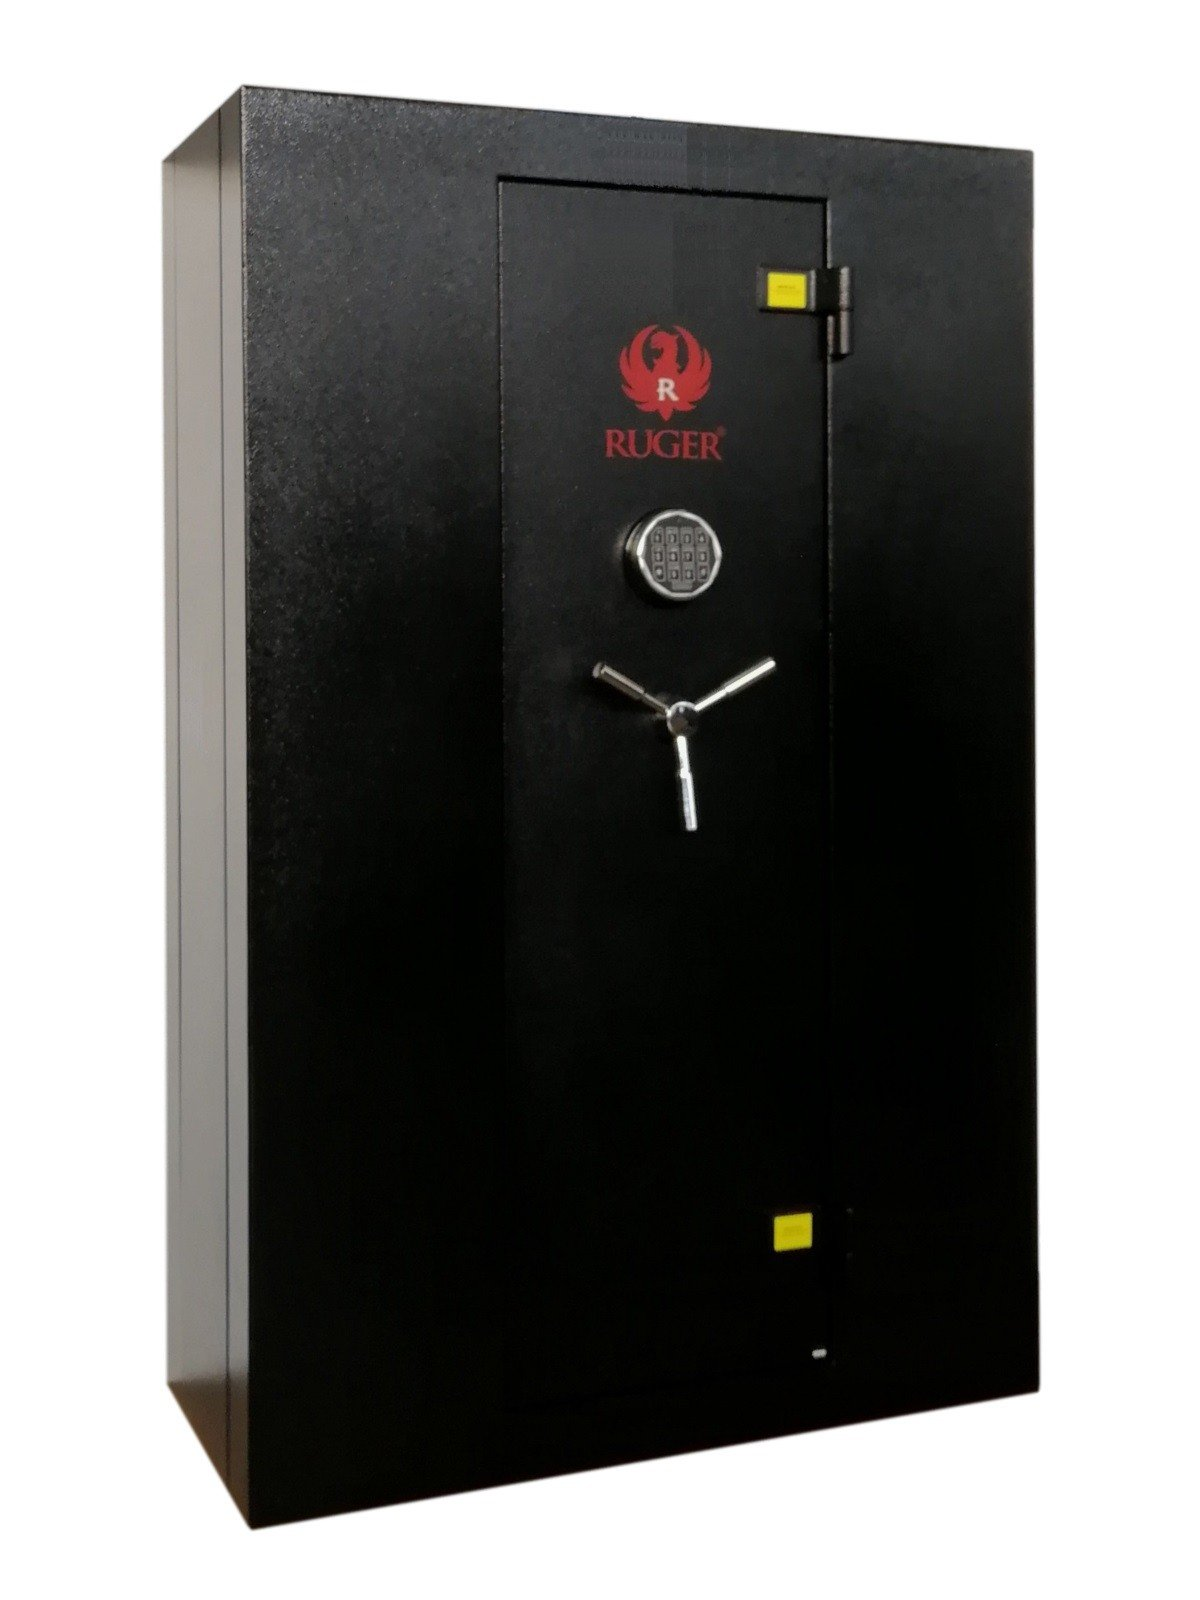 "SnapSafe Ruger Super Titan Digital Modular Safe, Storage for Firearms and Valuables for Home or Office, Security Gunsafe with Electronic Lock Perfect for Closet, Measures 59""H x 38""W x 17.5""D"